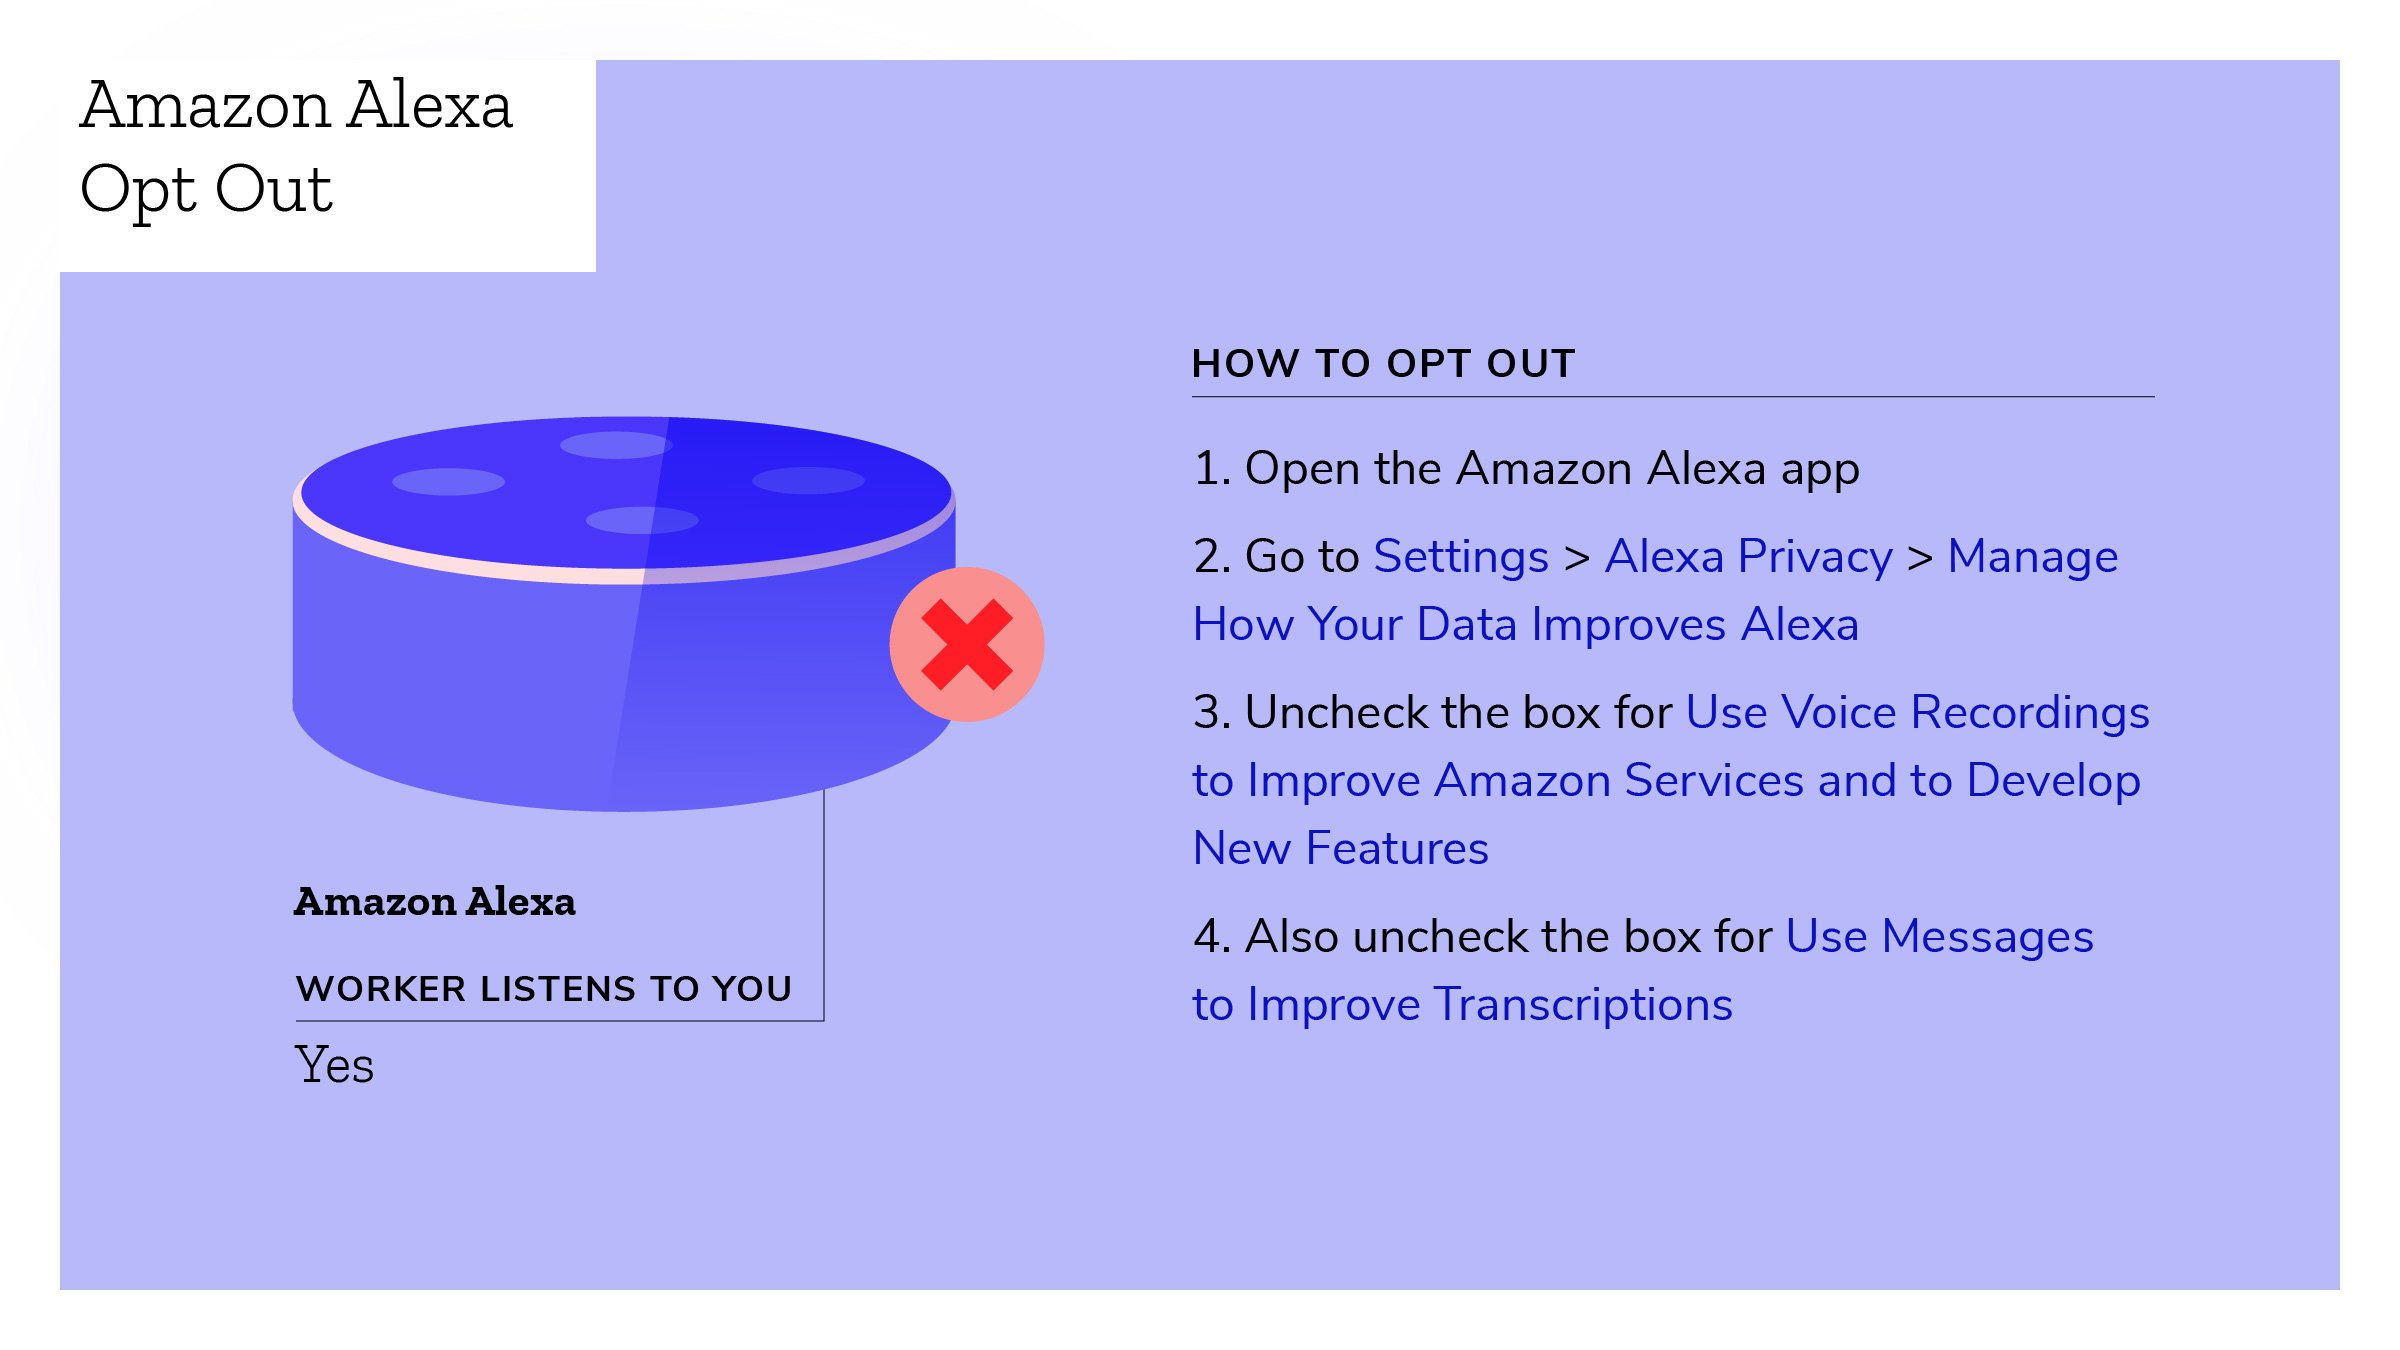 Amazon Alexa opt out